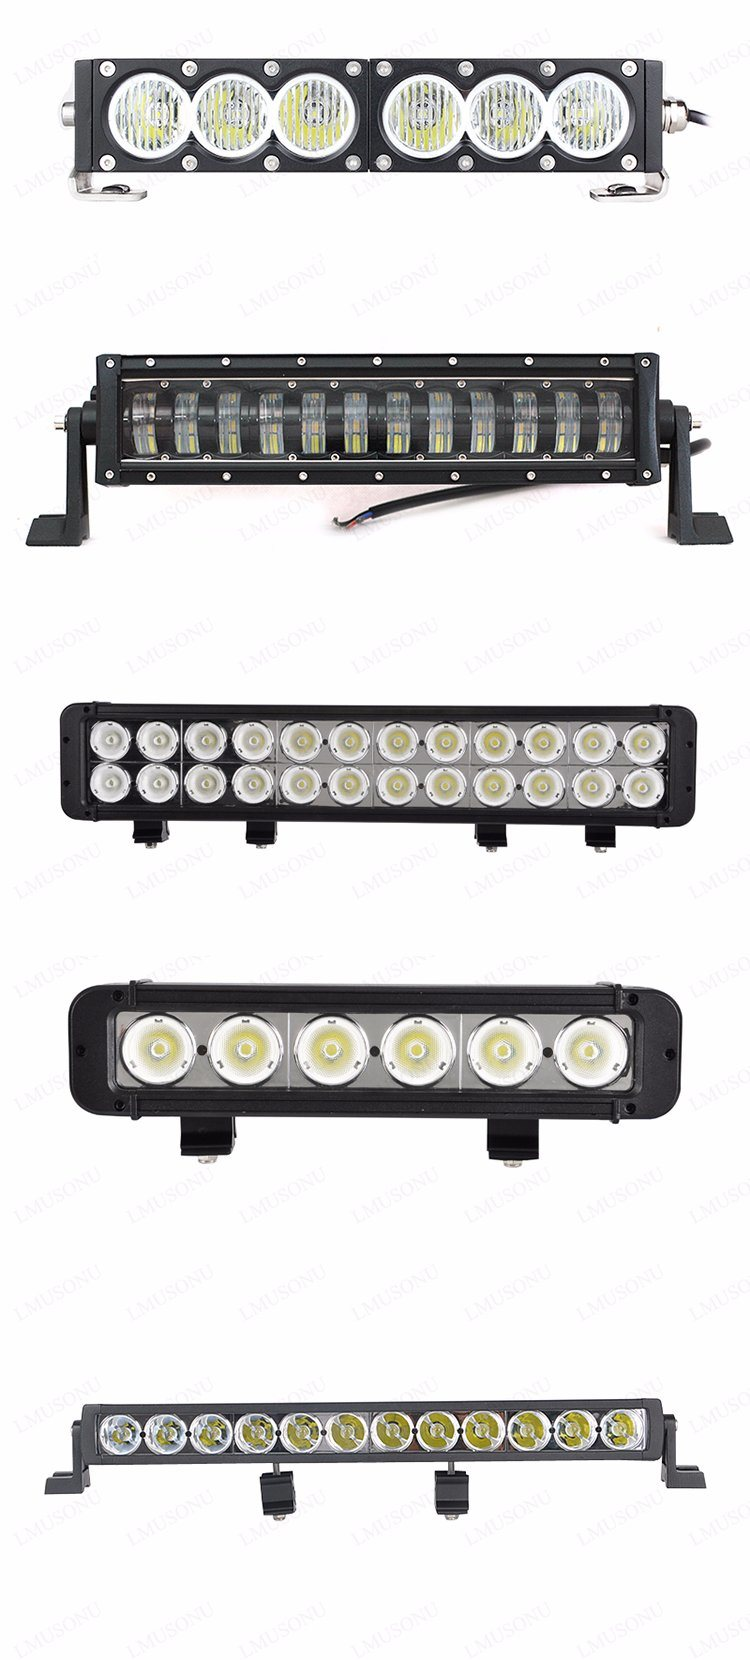 36W 72W 120W 180W 240W 288W 300W 50 Inch CREE Car off Road LED Light Bar